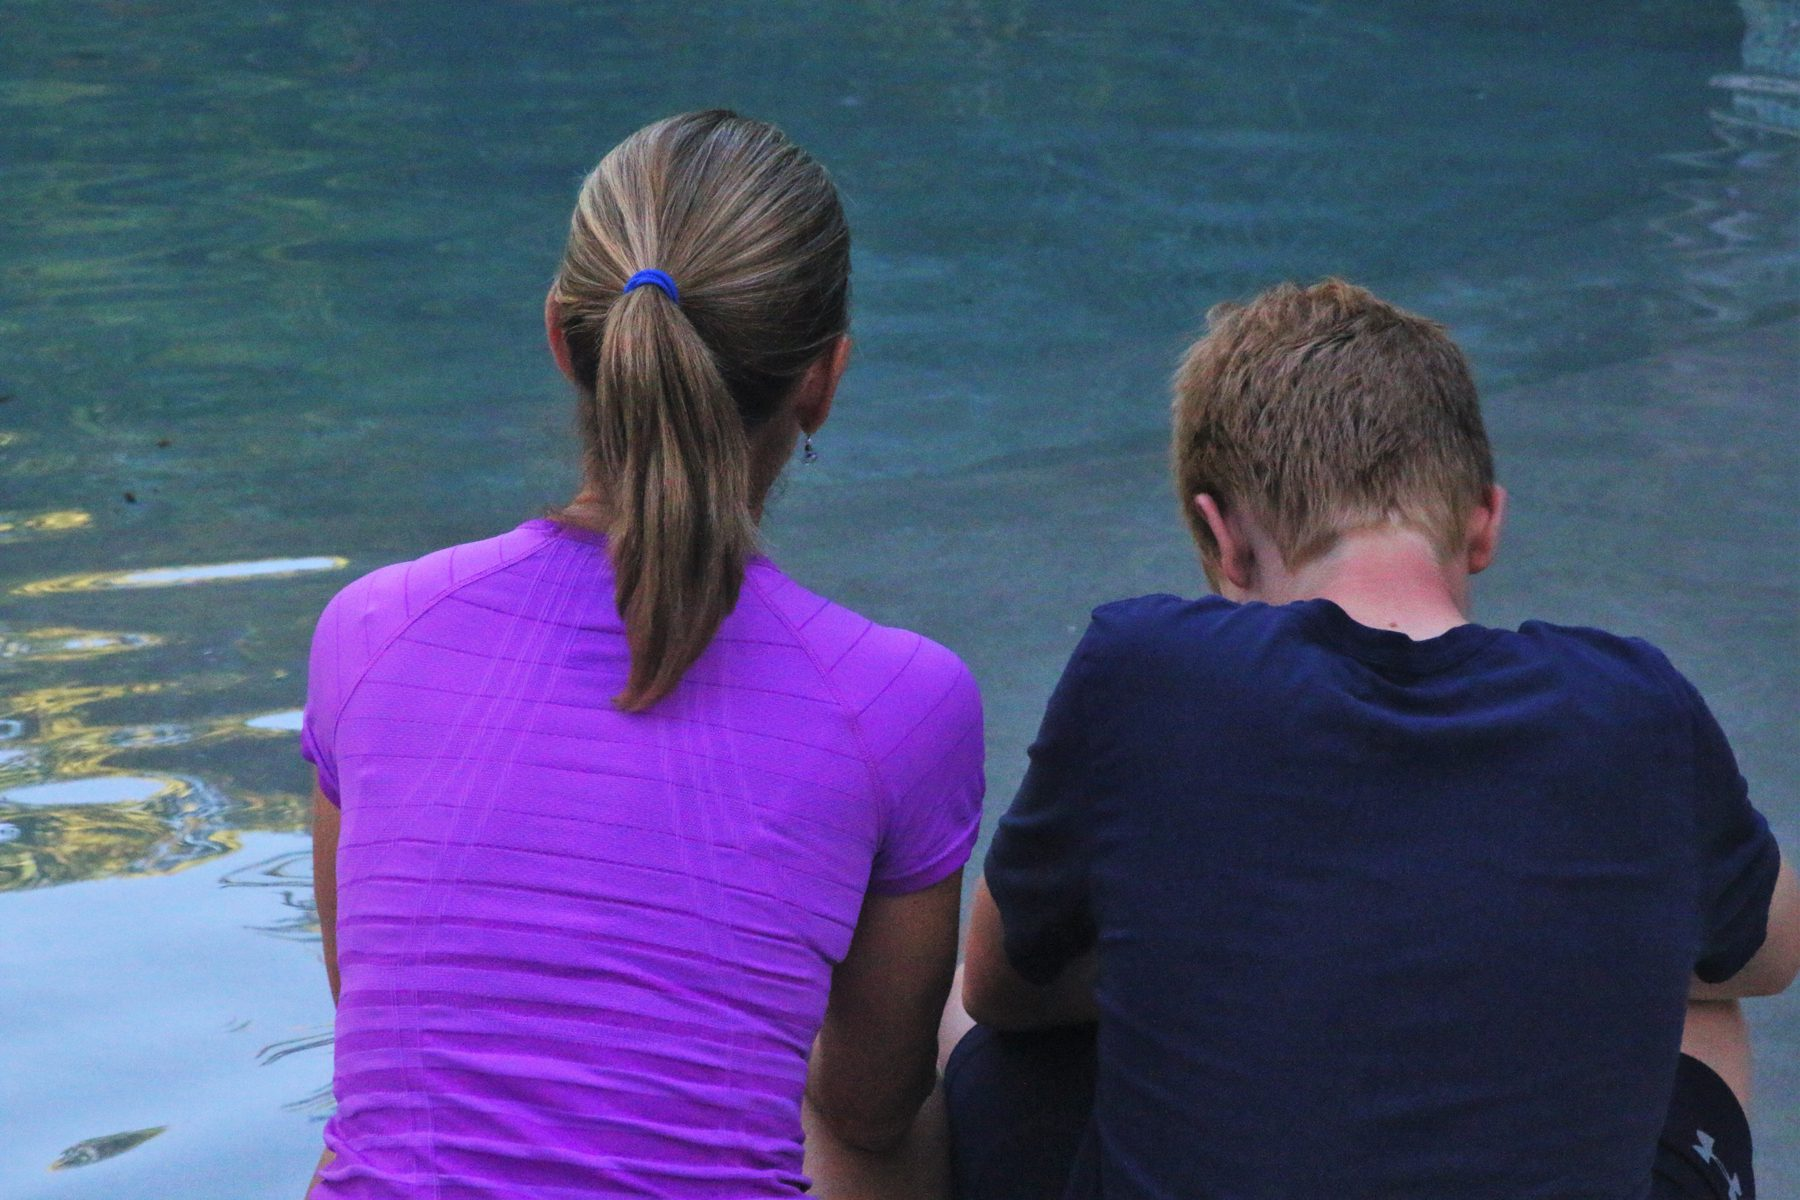 Behind shot of parent and teen sitting in front of water, talking